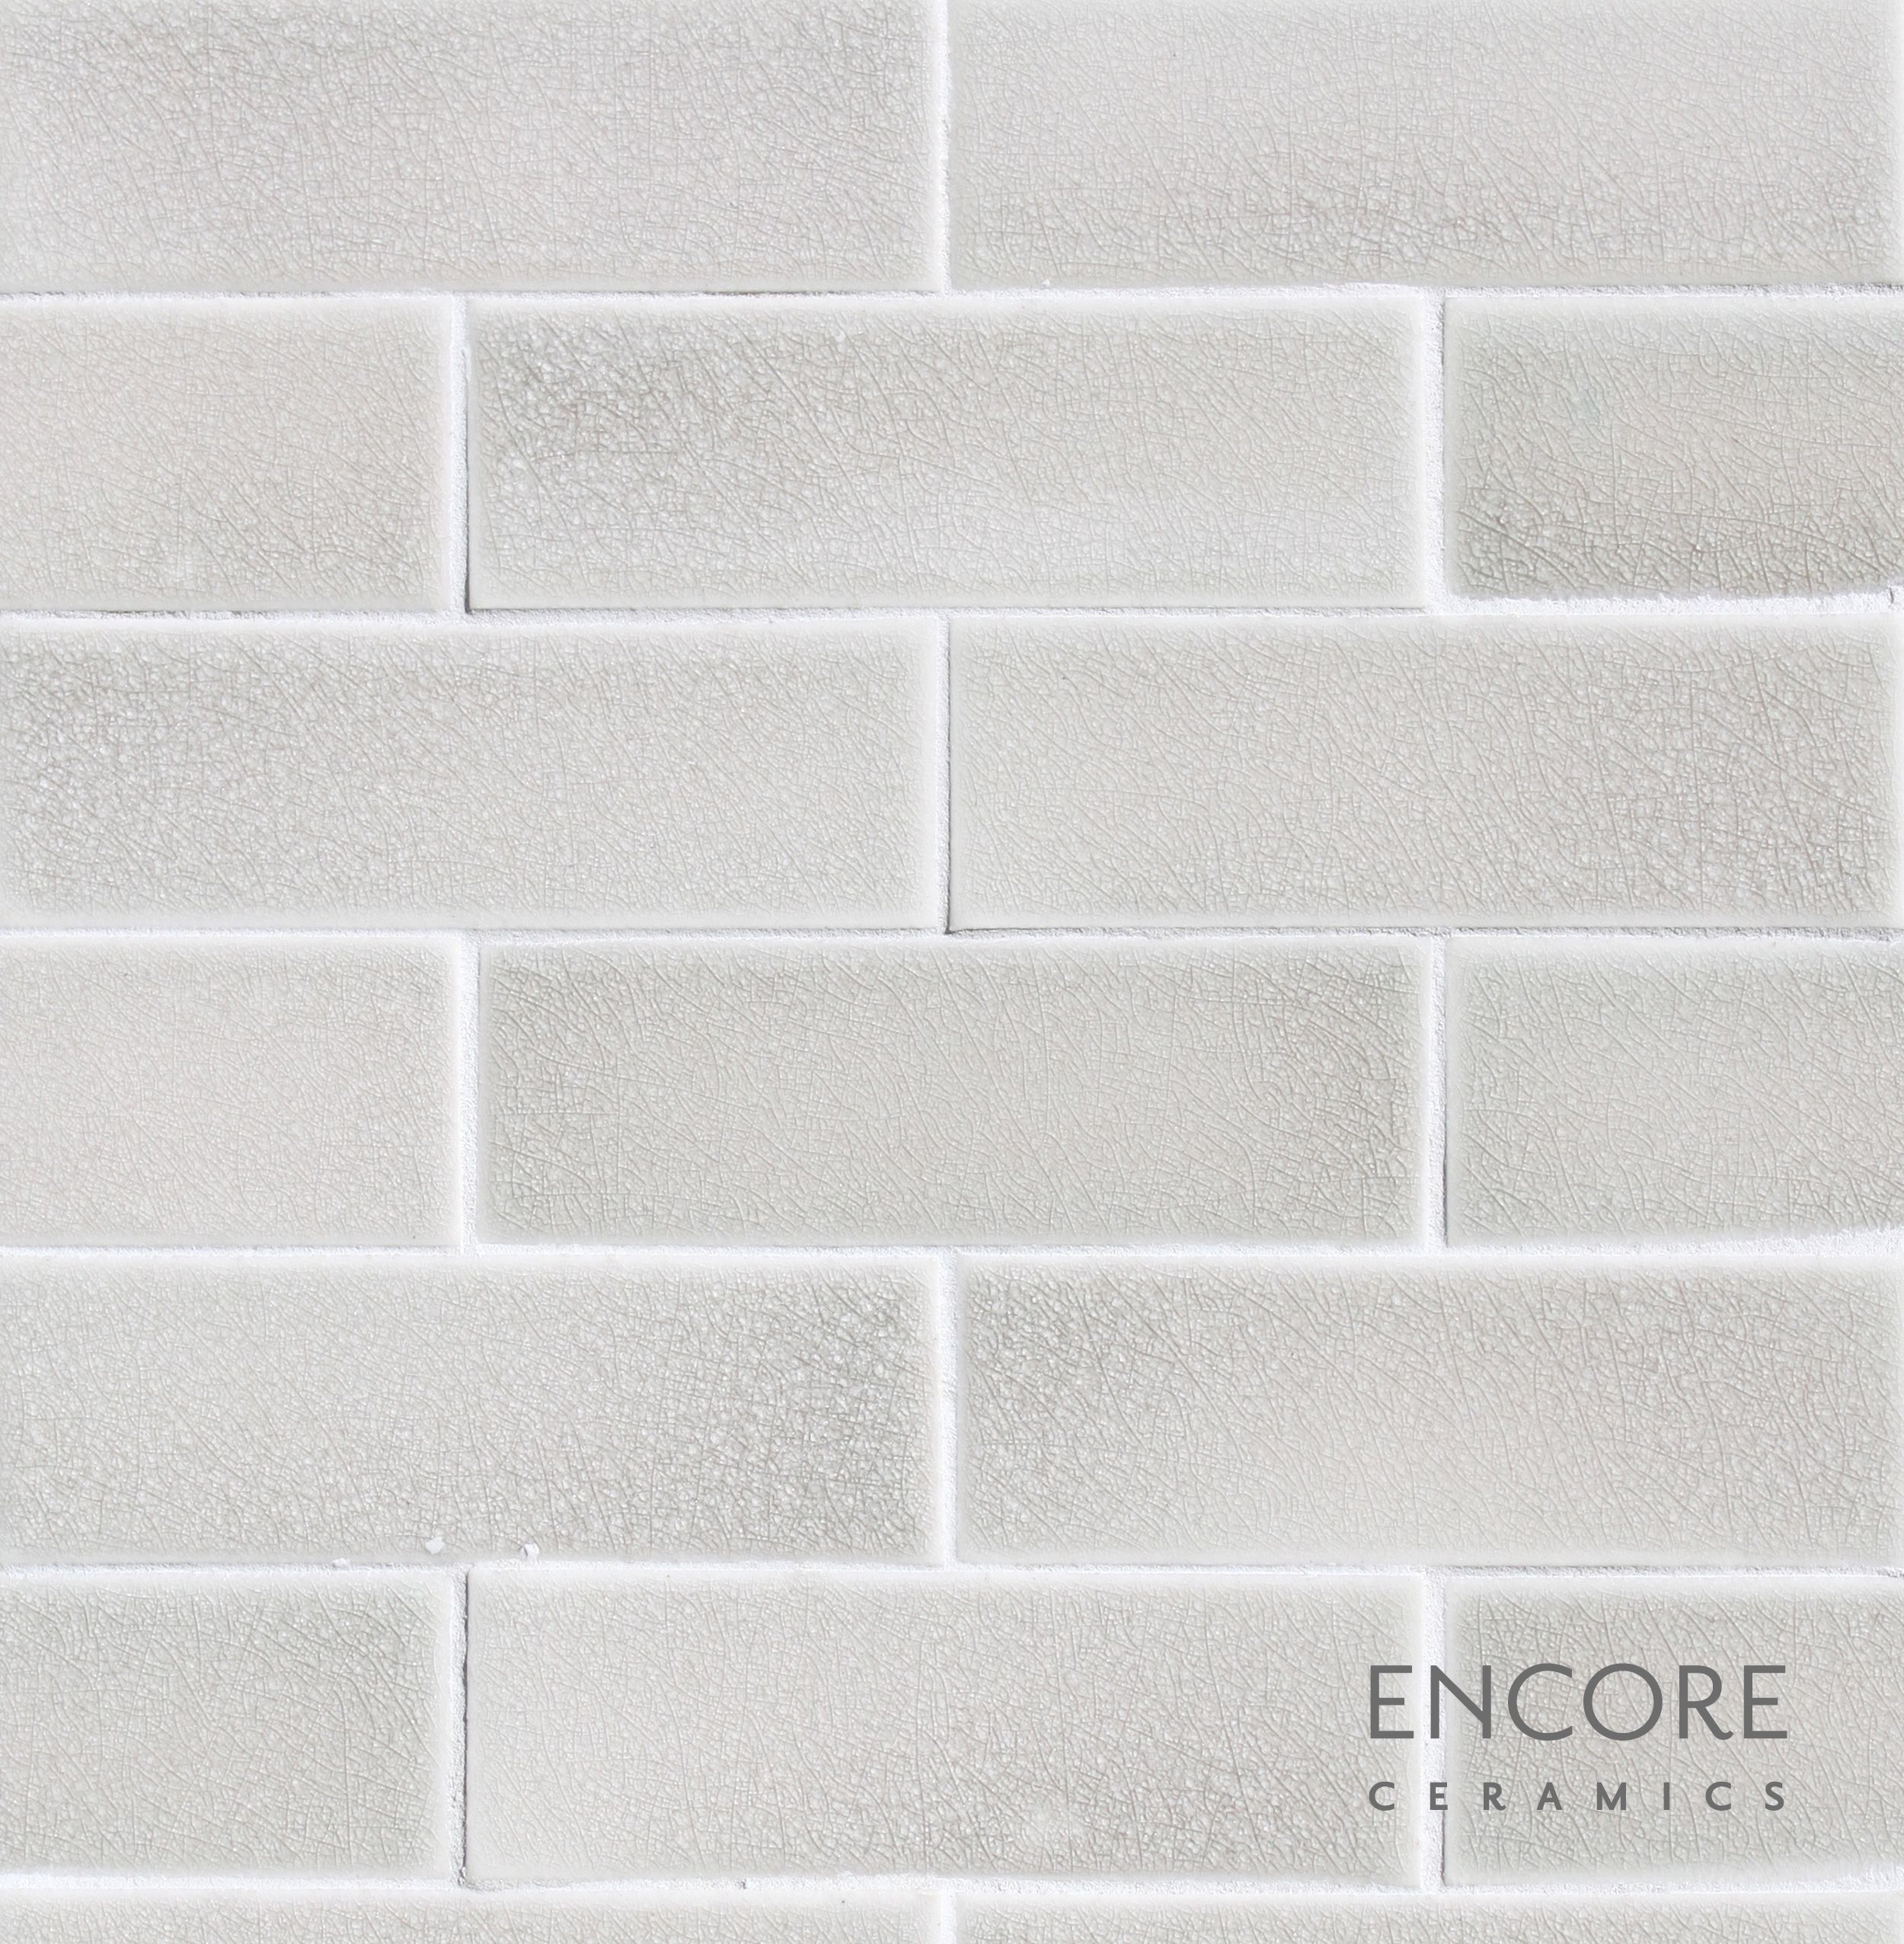 Dove gray 3x6 crackle subway tile available online from dove gray 3x6 crackle subway tile available online from thebuilderdepot for 850 square foot places spaces pinterest dove grey subway tiles dailygadgetfo Image collections